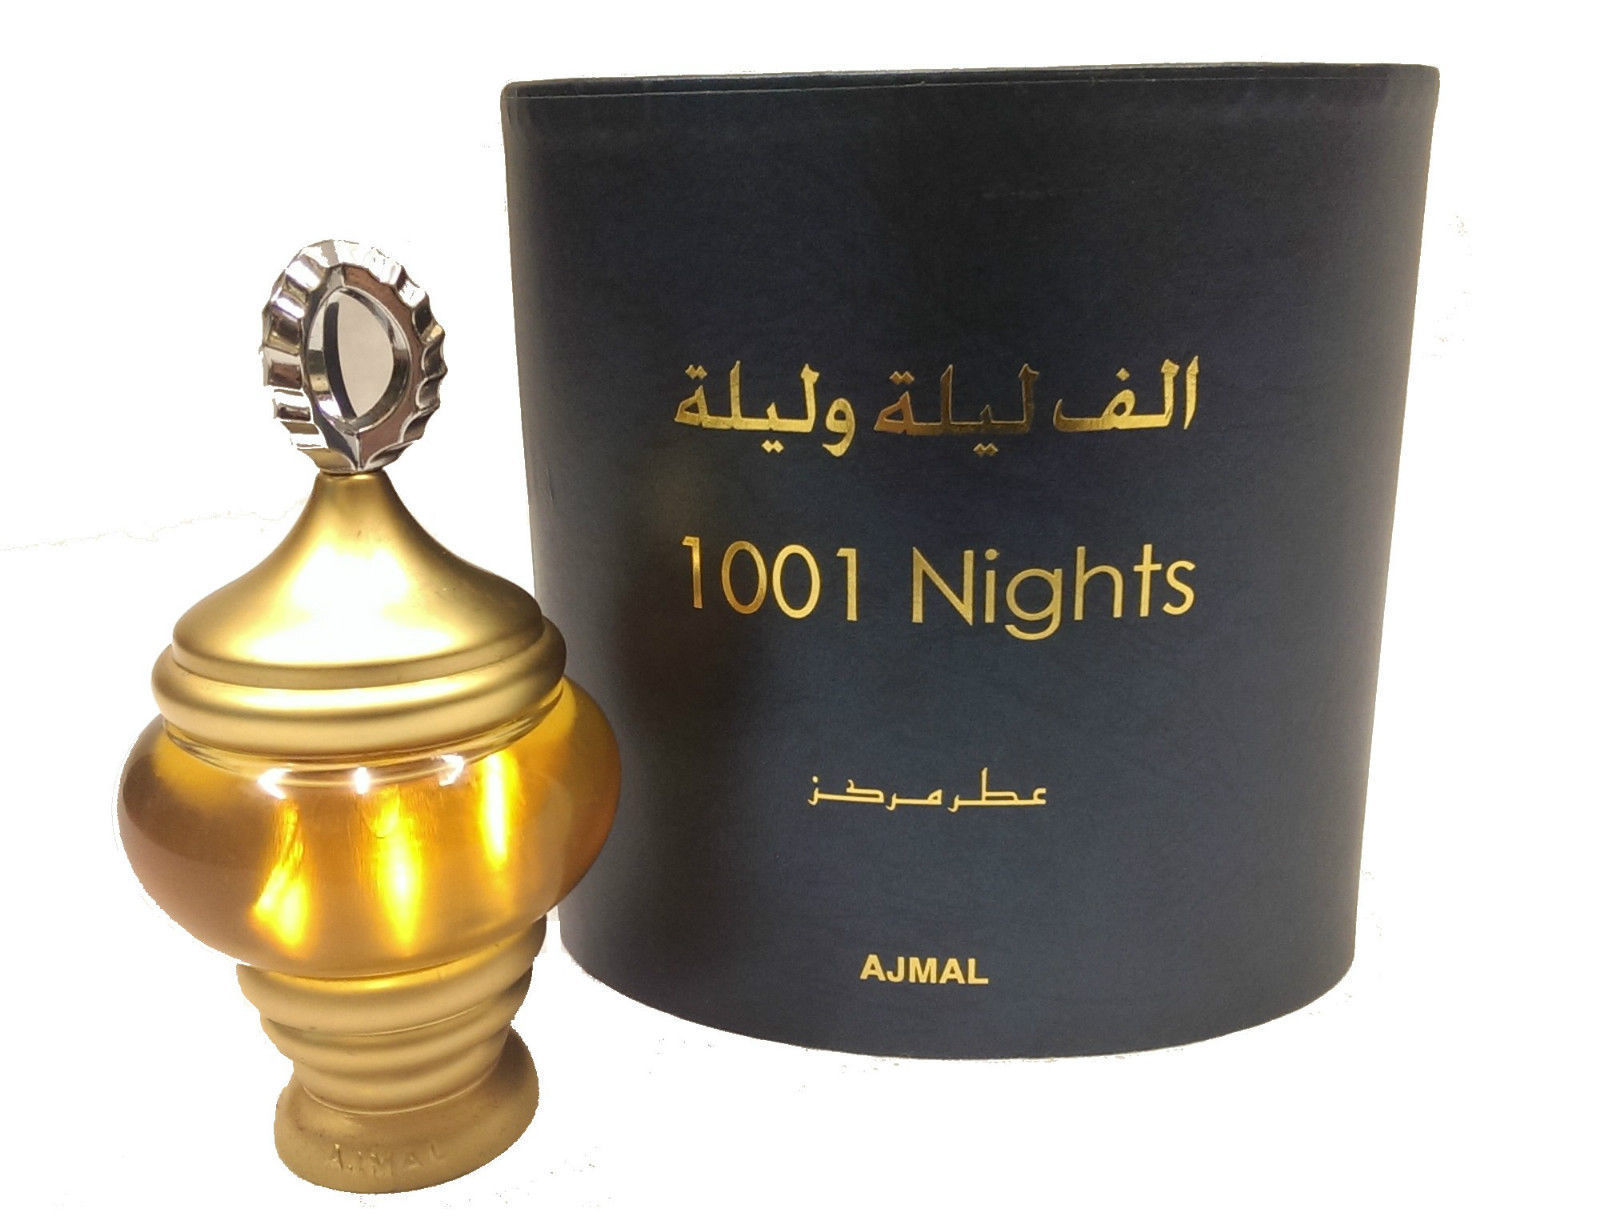 น้ำหอม 1001 Nights EDP Spray by Ajmal 60ml.